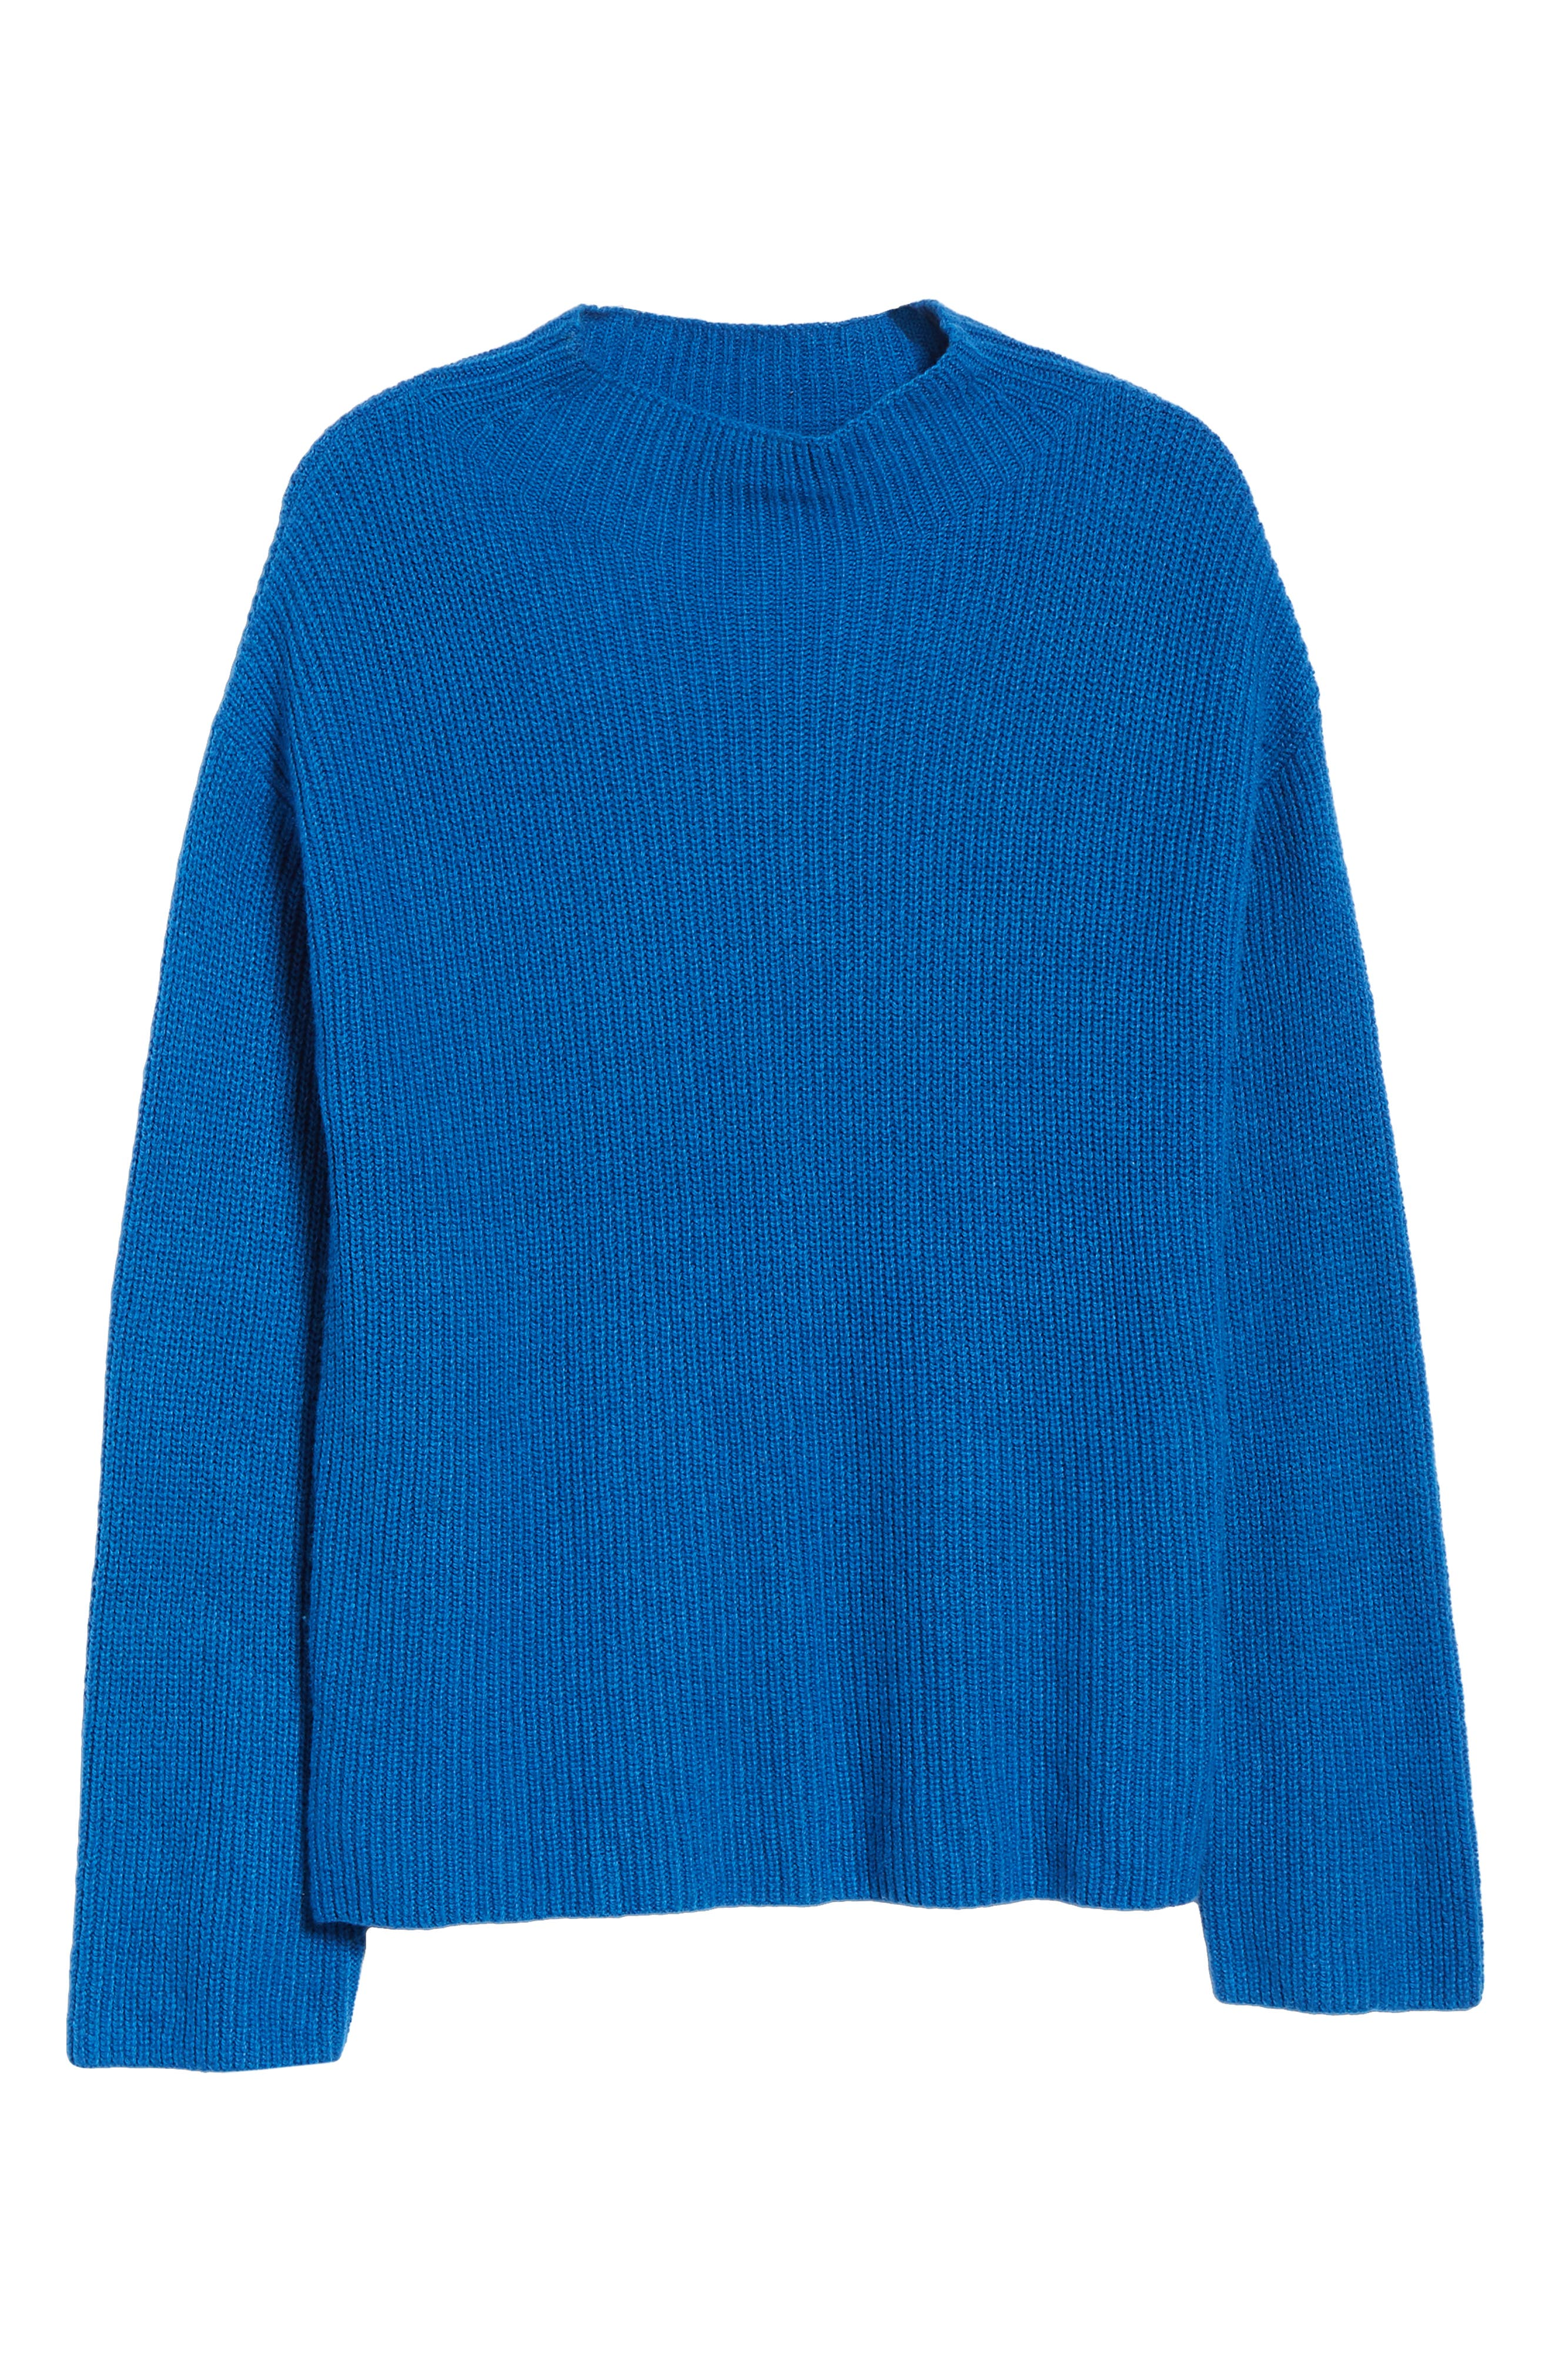 Ribbed Funnel Neck Sweater,                             Alternate thumbnail 6, color,                             BLUE CLASSICS